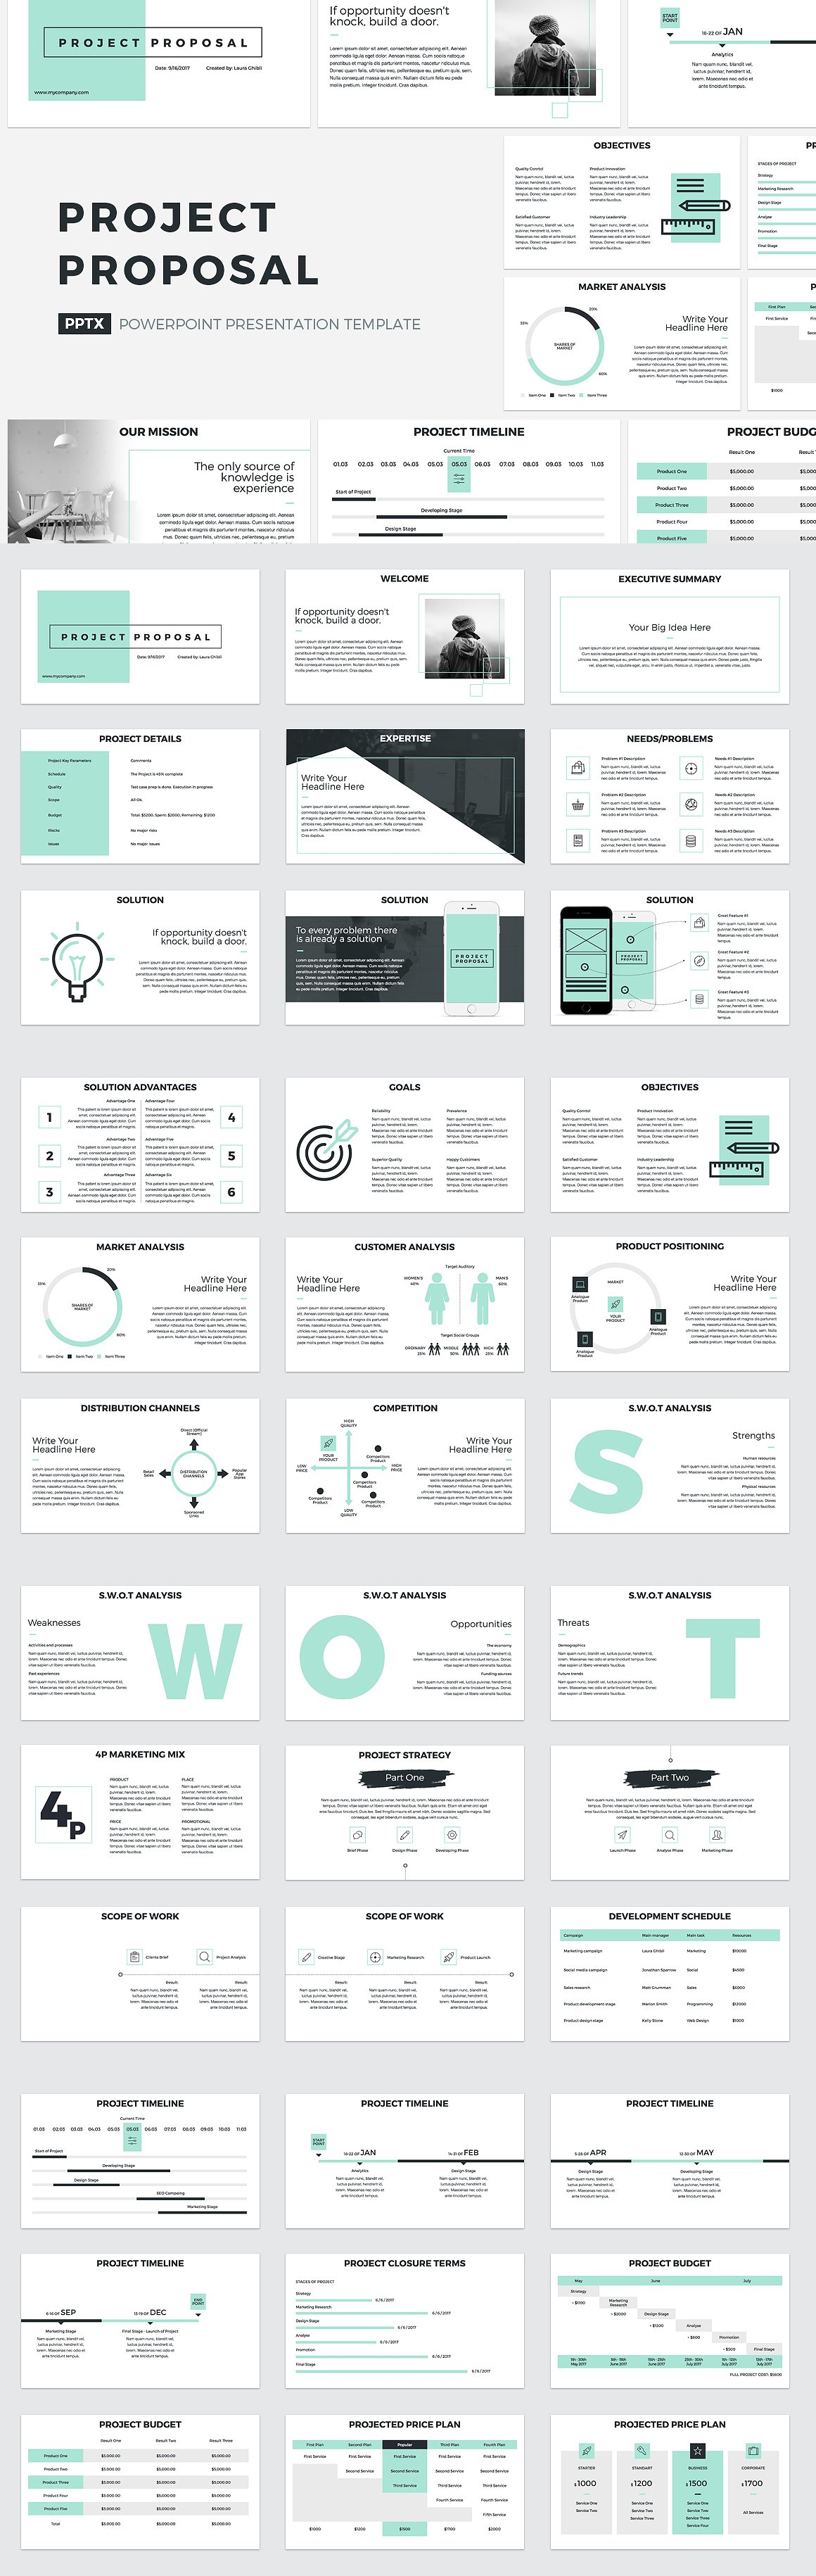 Project Proposal Powerpoint Template Pdf  Presentation Templates